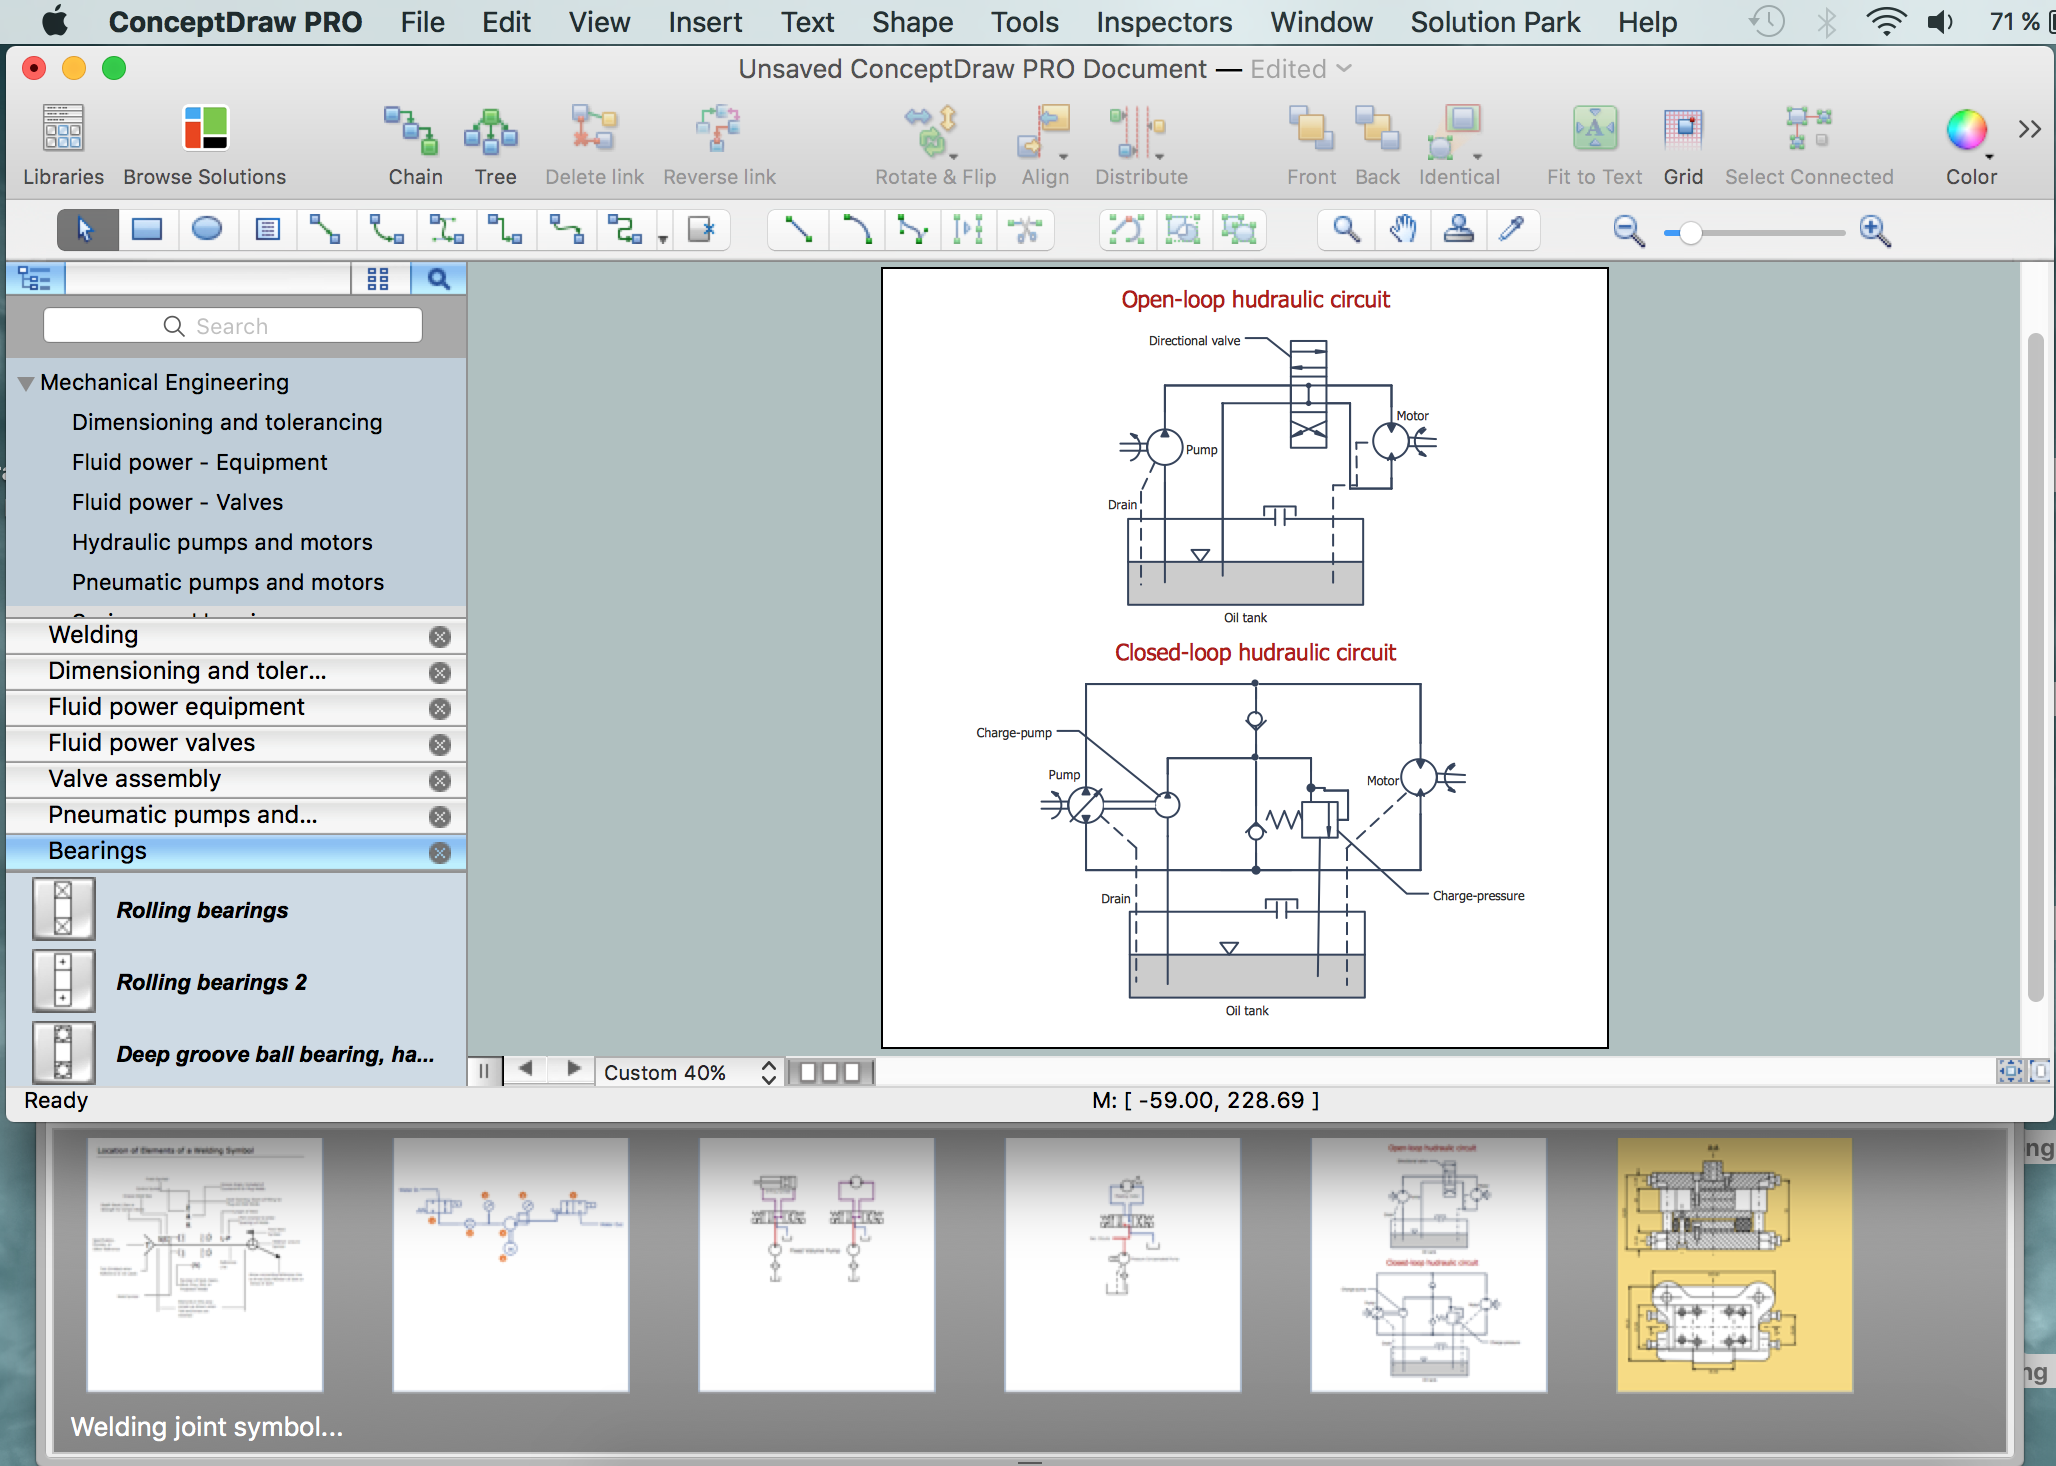 Cad drawing software for making mechanic diagram and for Online cad drawing software